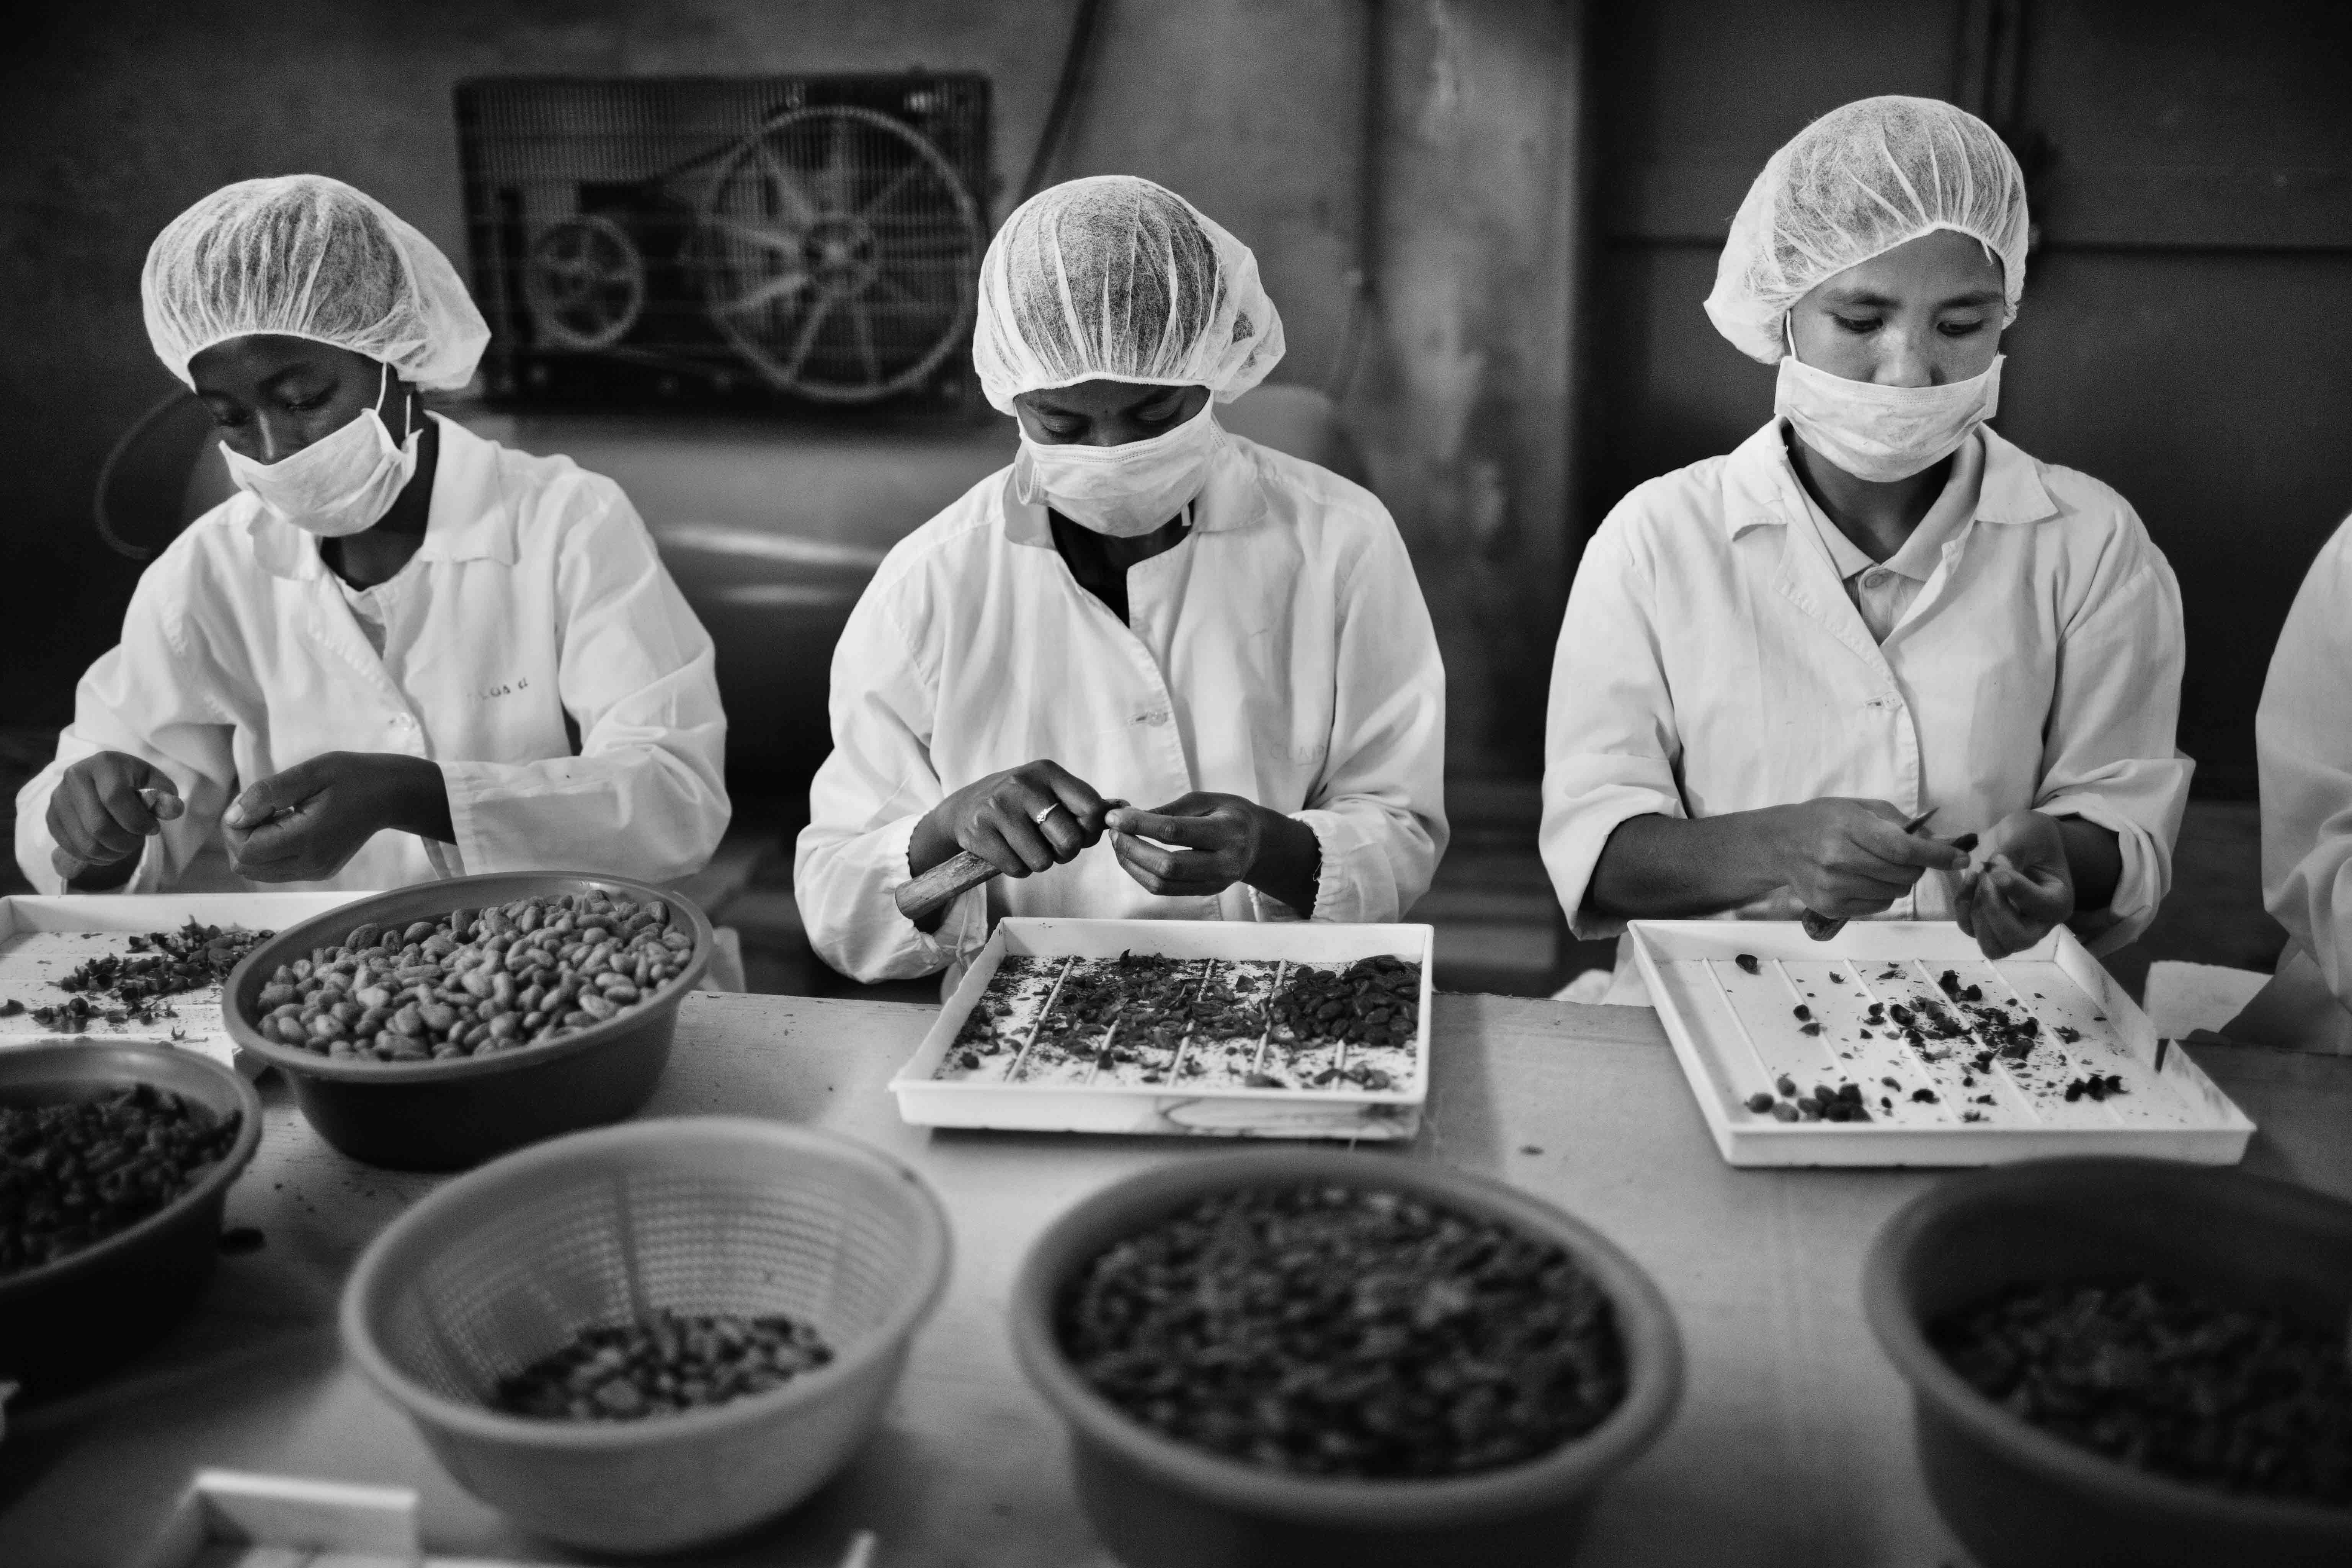 Employees prepare chocolate for the Easter holiday season at the Cinagra chocolate factory located on the outskirts of Antananarivo. March 2013.